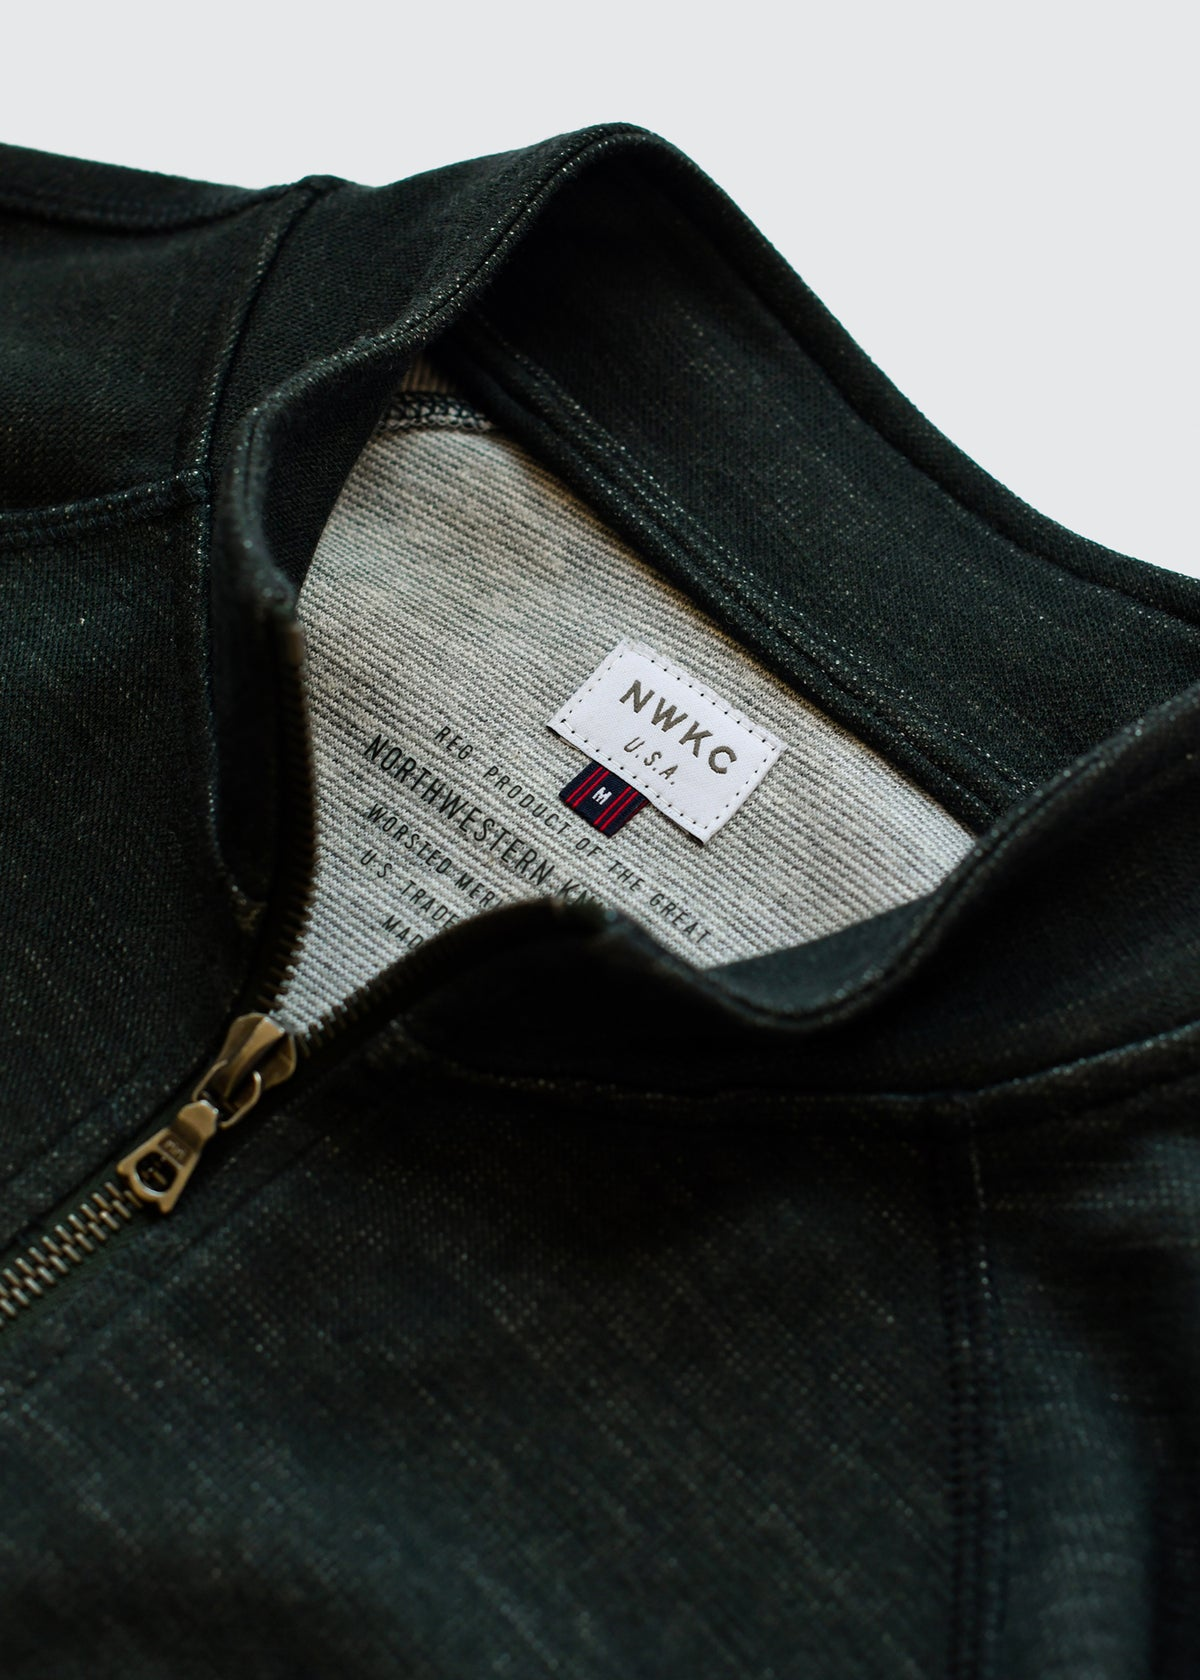 009 - SHORT COLLAR ZIP - FOREST - Wilson & Willy's - MPLS Neighbor Goods